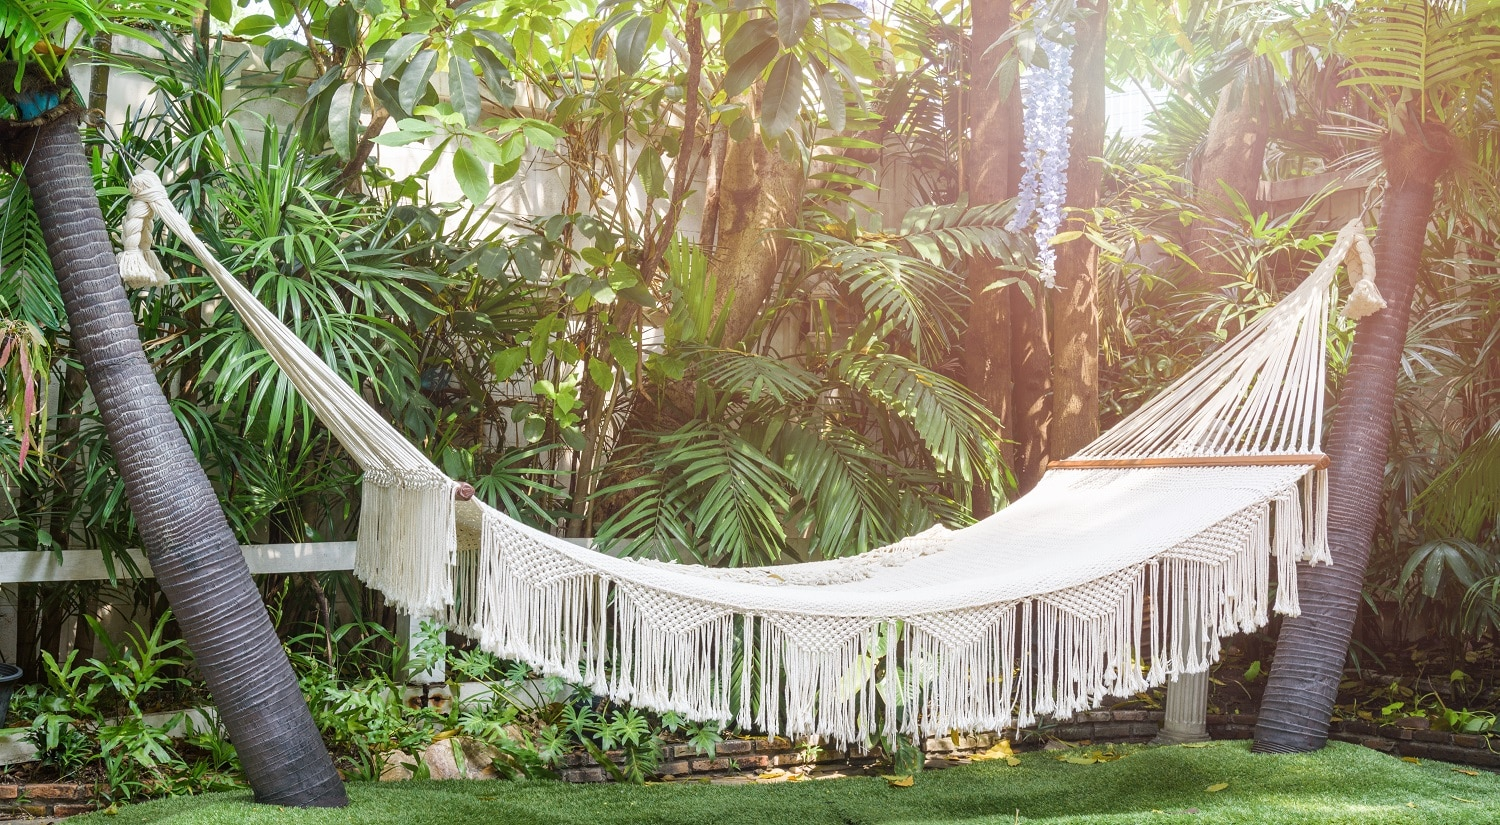 Empty white hammock hanging between palm trees on the garden for recreation or relaxation on summer day